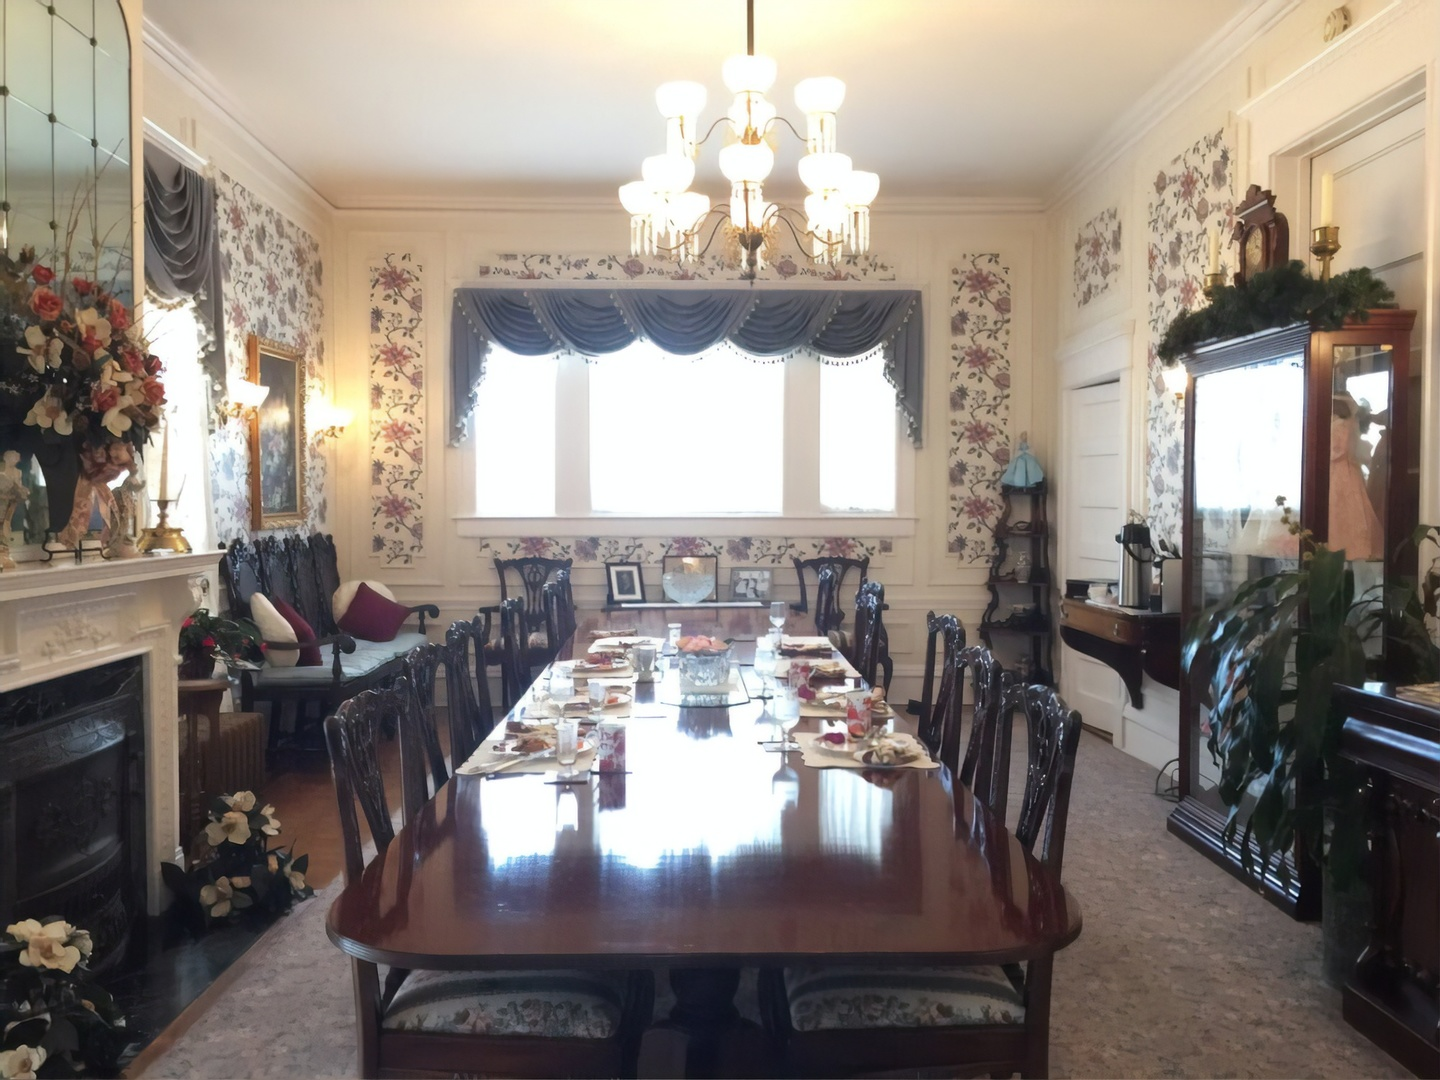 A view of a living room filled with furniture and a fire place at Rosehill Inn Bed & Breakfast.